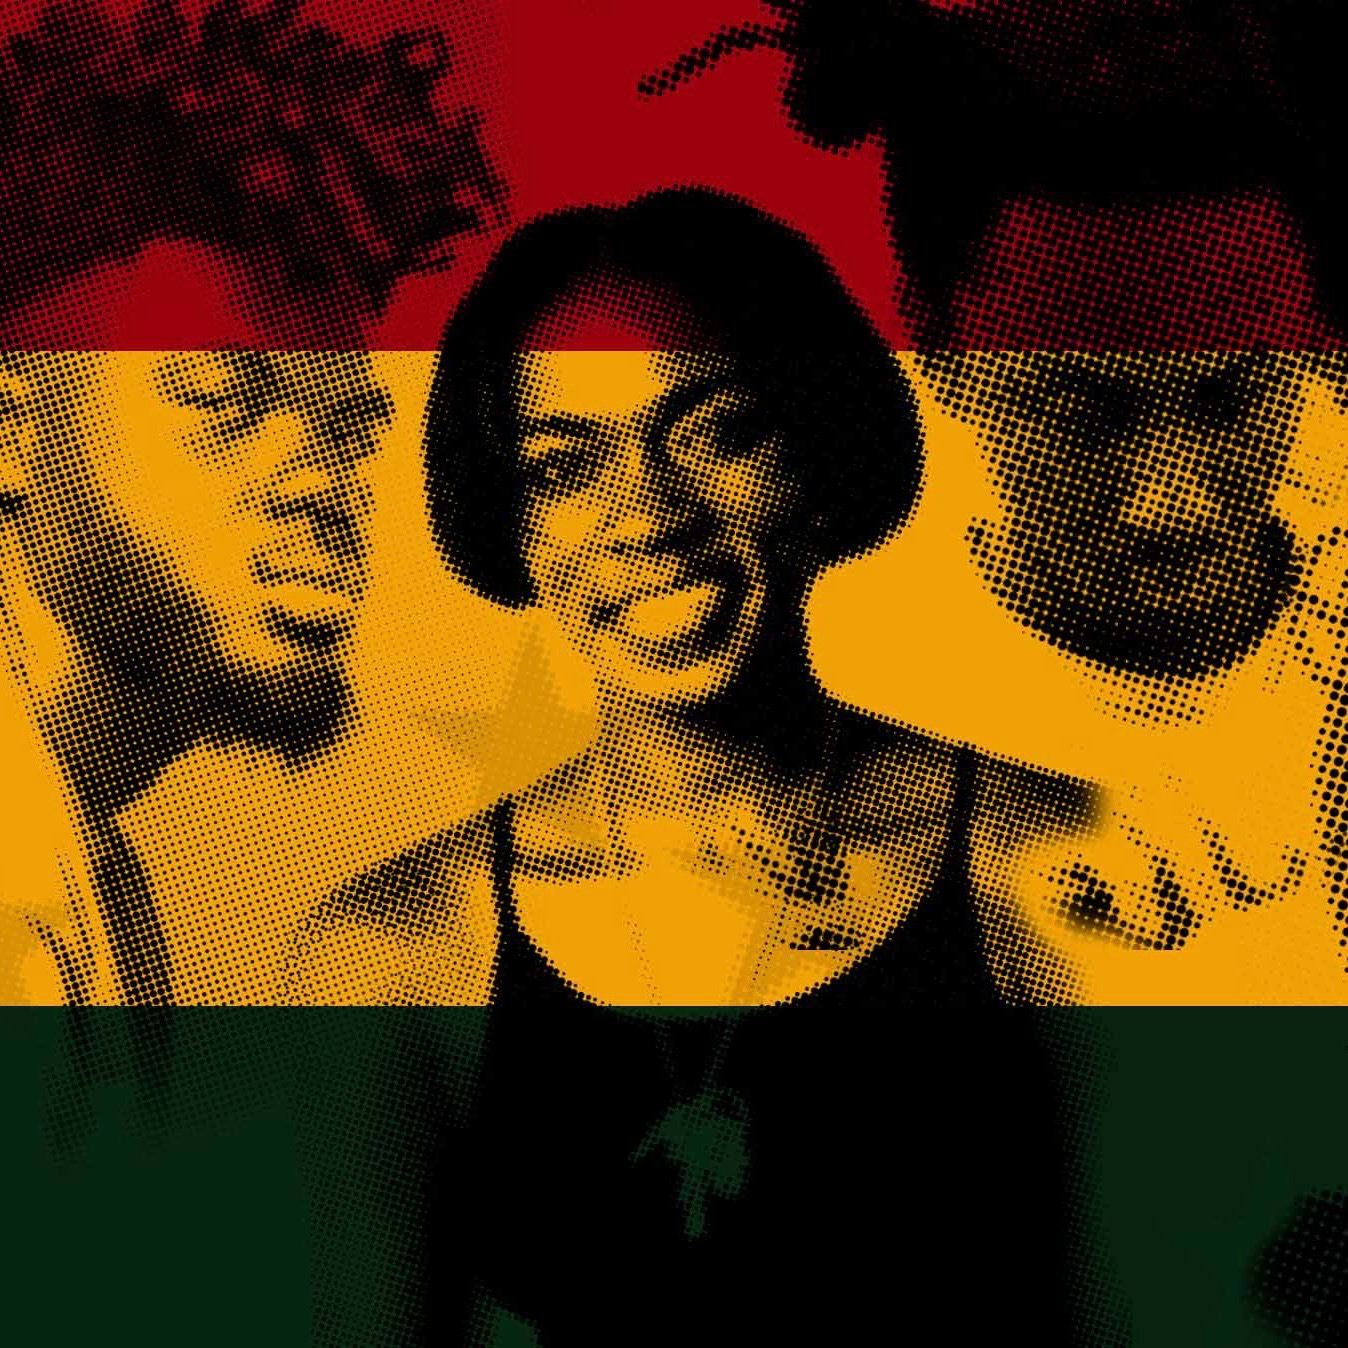 'The Year of Return': 5 Ghanaian Artists Sound Off on Pan-African Solidarity